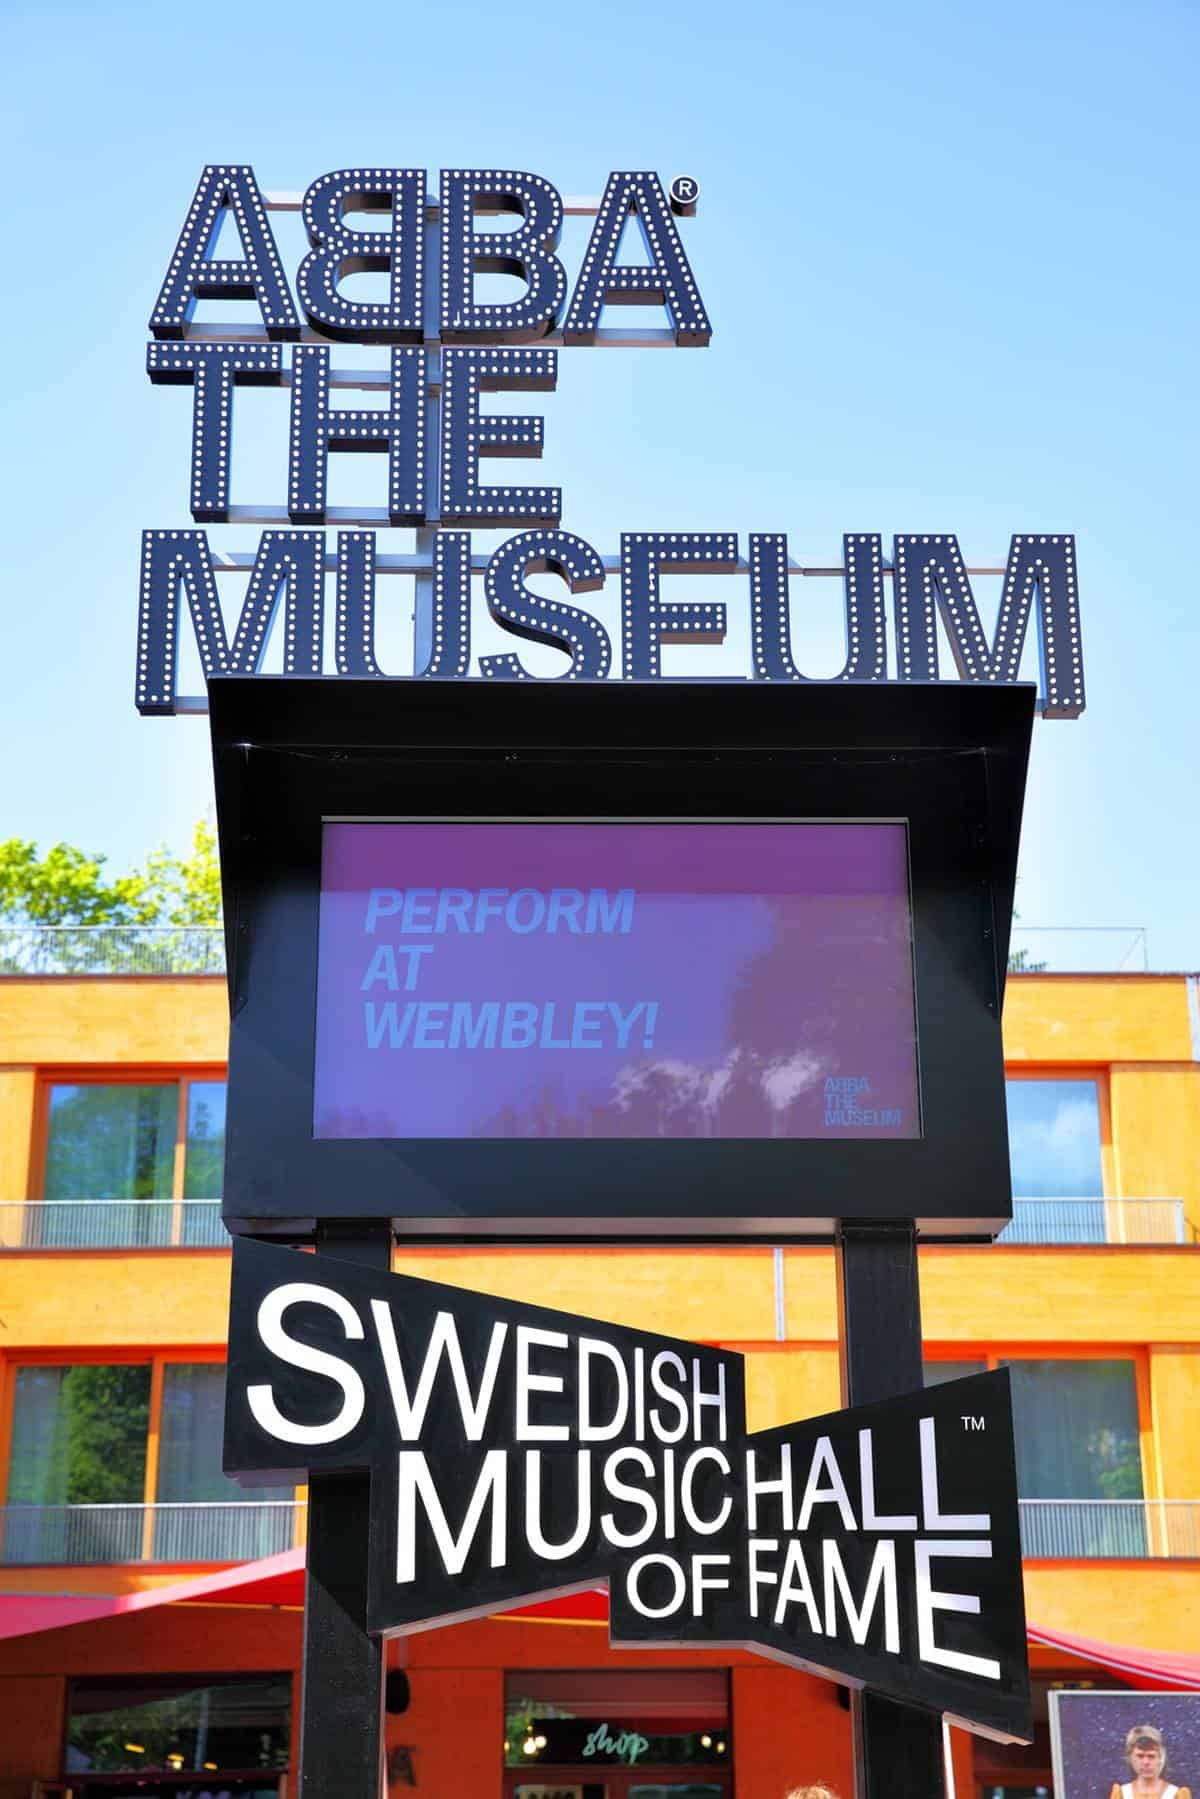 ABBA: The Museum is one of the top things to do in Stockholm.